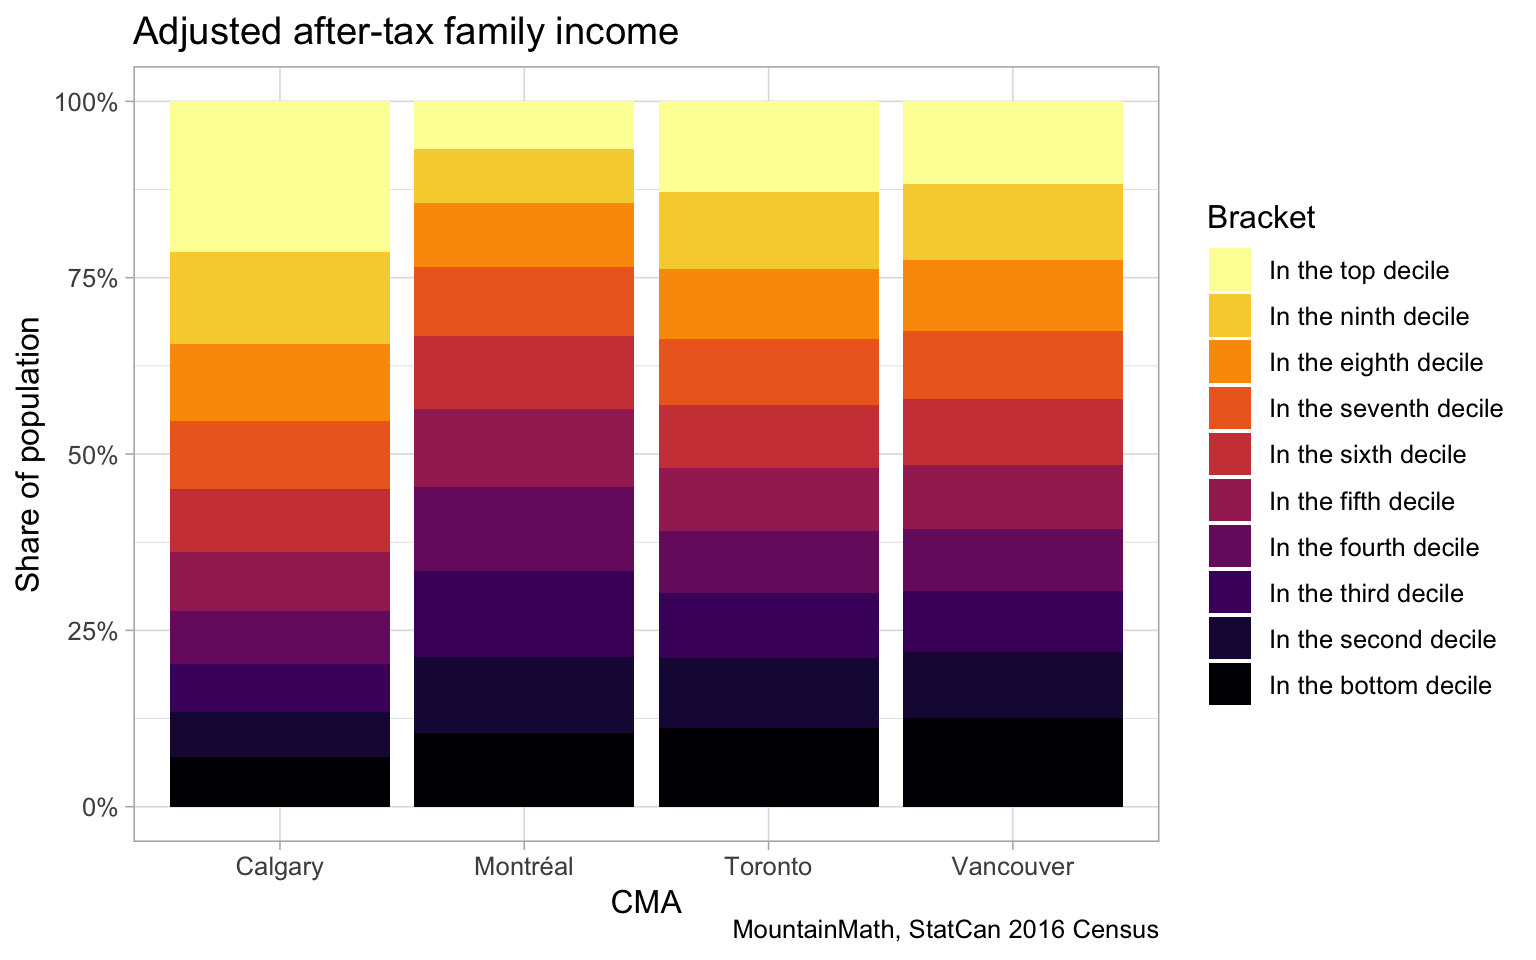 Adjusted family income deciles